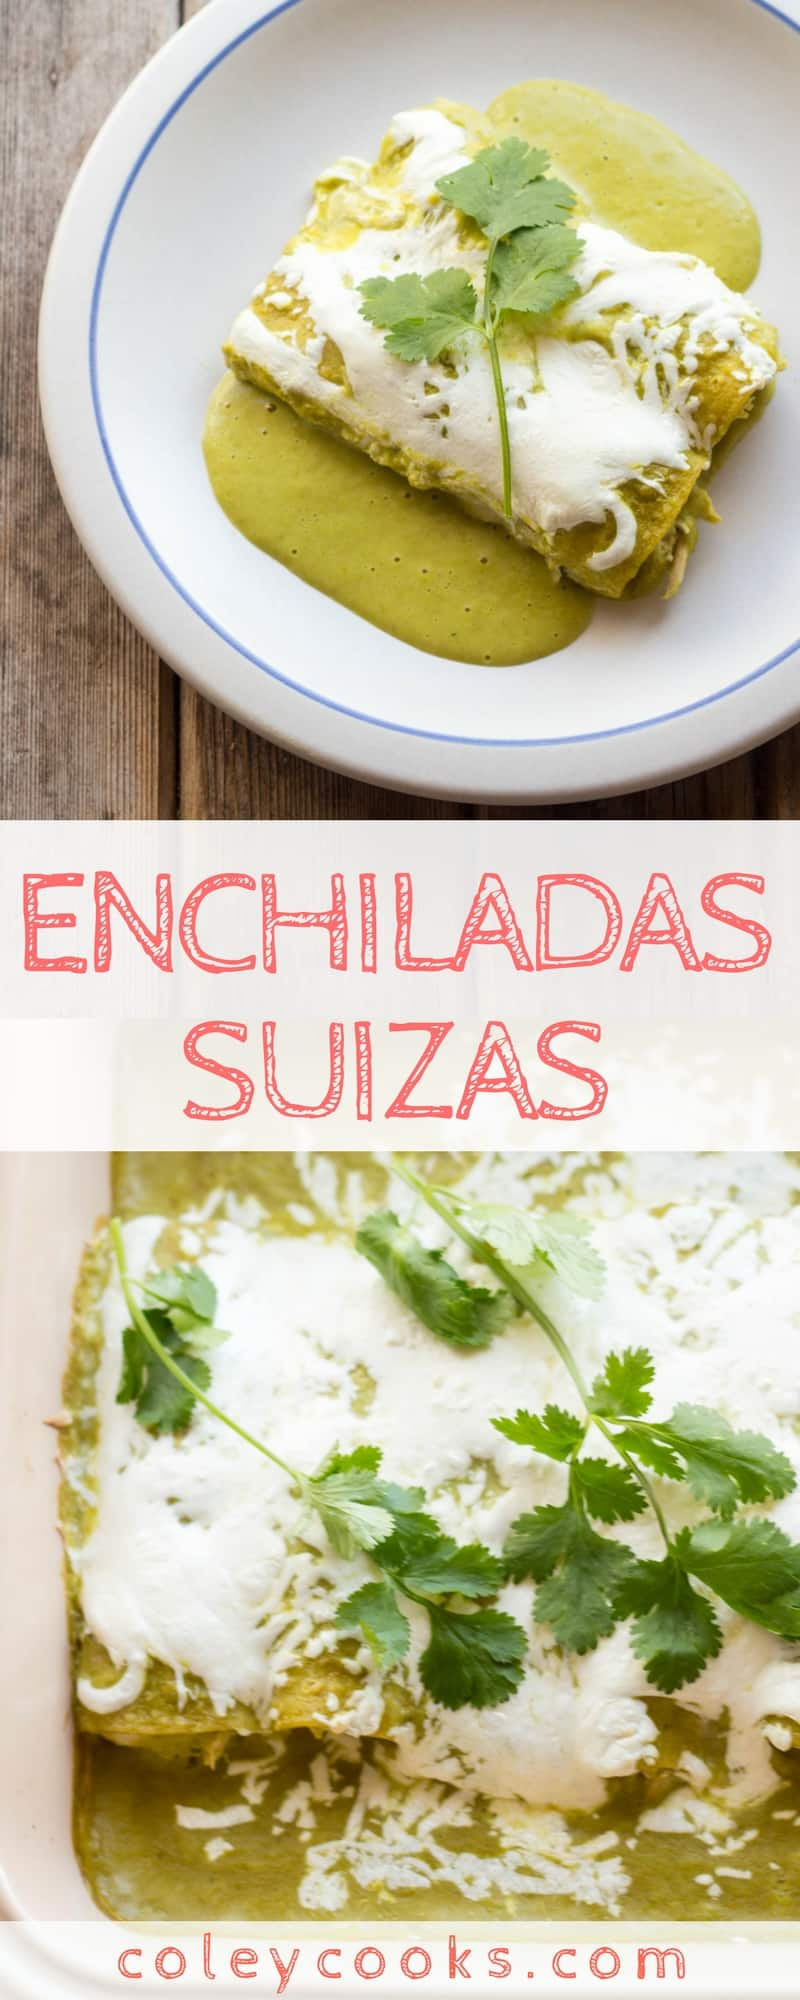 ENCHILADAS SUIZAS | This classic Mexican recipe is made with pulled chicken rolled in corn tortillas and smothered in a creamy tomatillo sauce #cincodemayo #glutenfree | ColeyCooks.com